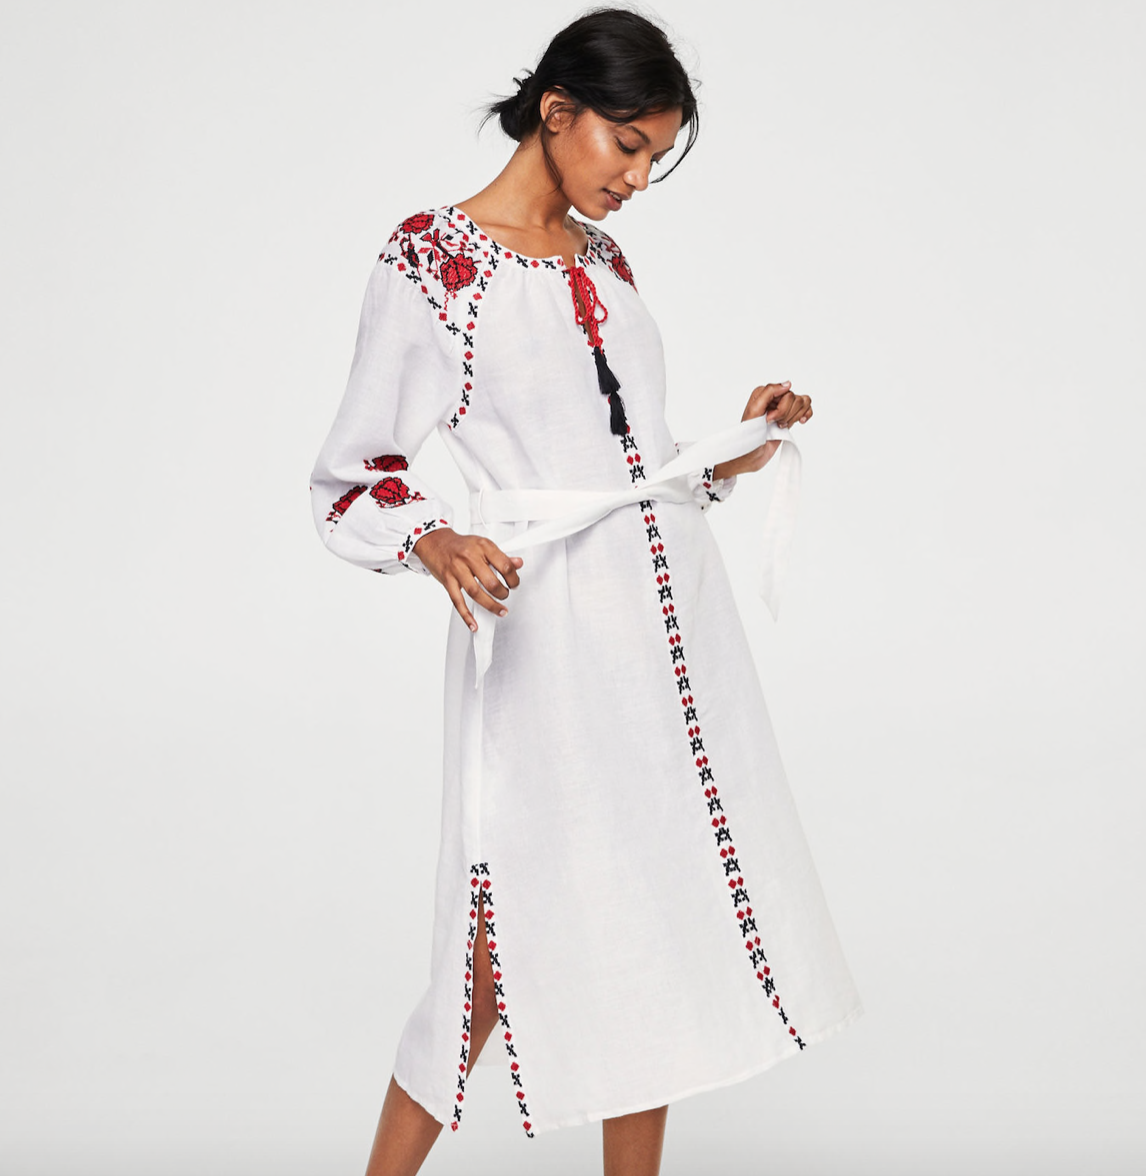 MANGO - Embroidered Linen Dress £69.99